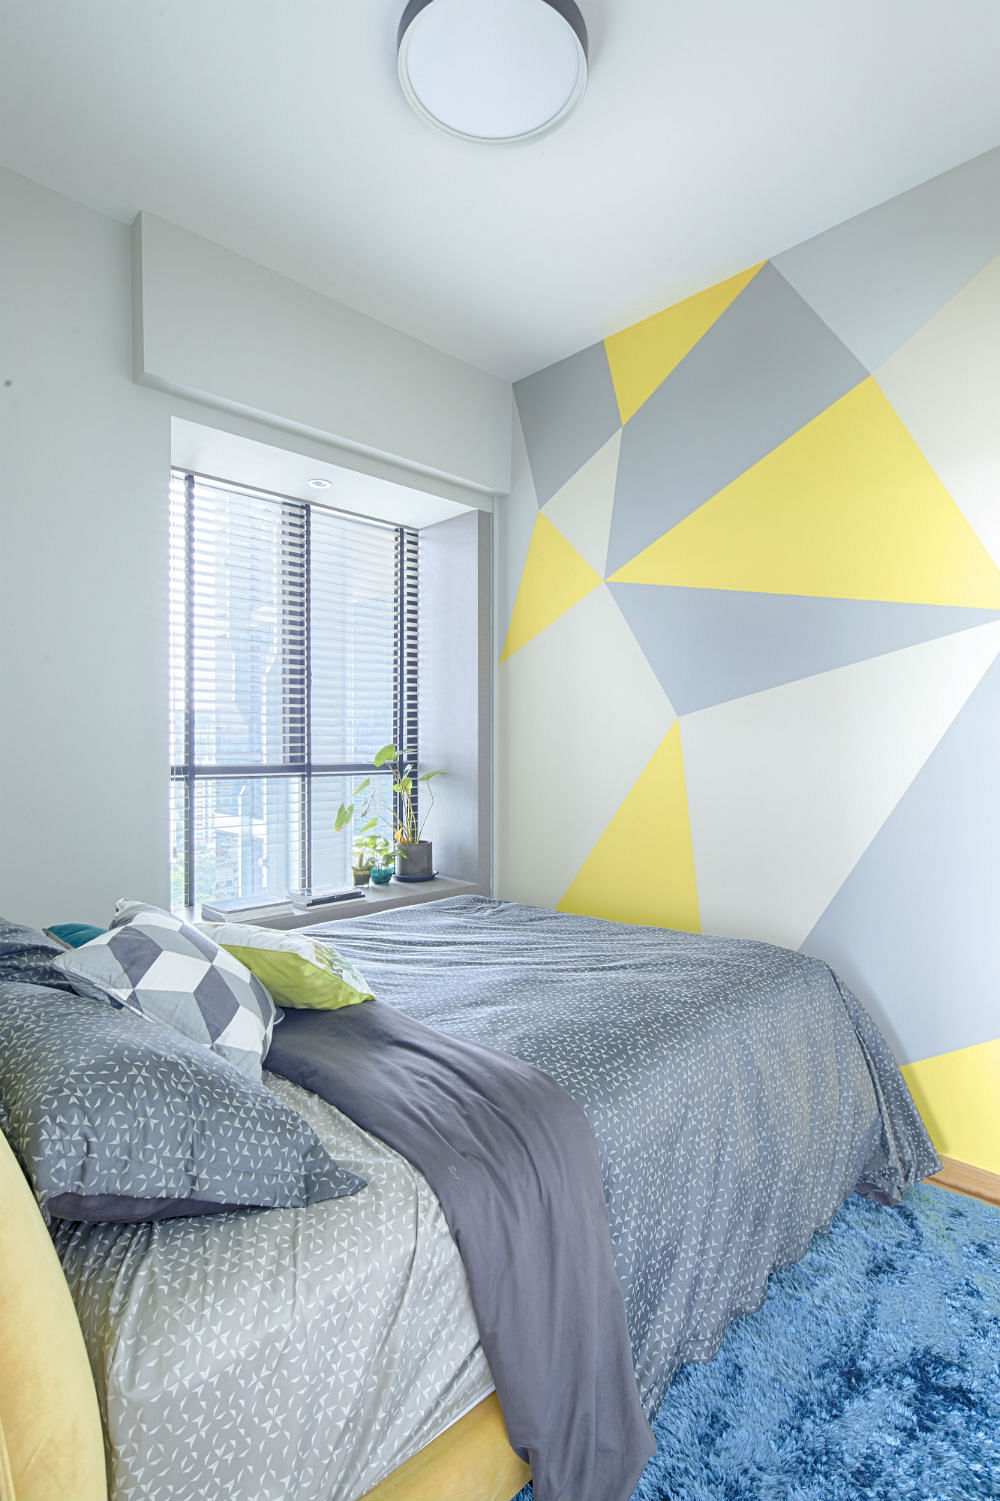 Incroyable Geometric Pattern, Wall, Paint, DIY, Bedroom, Prozfile